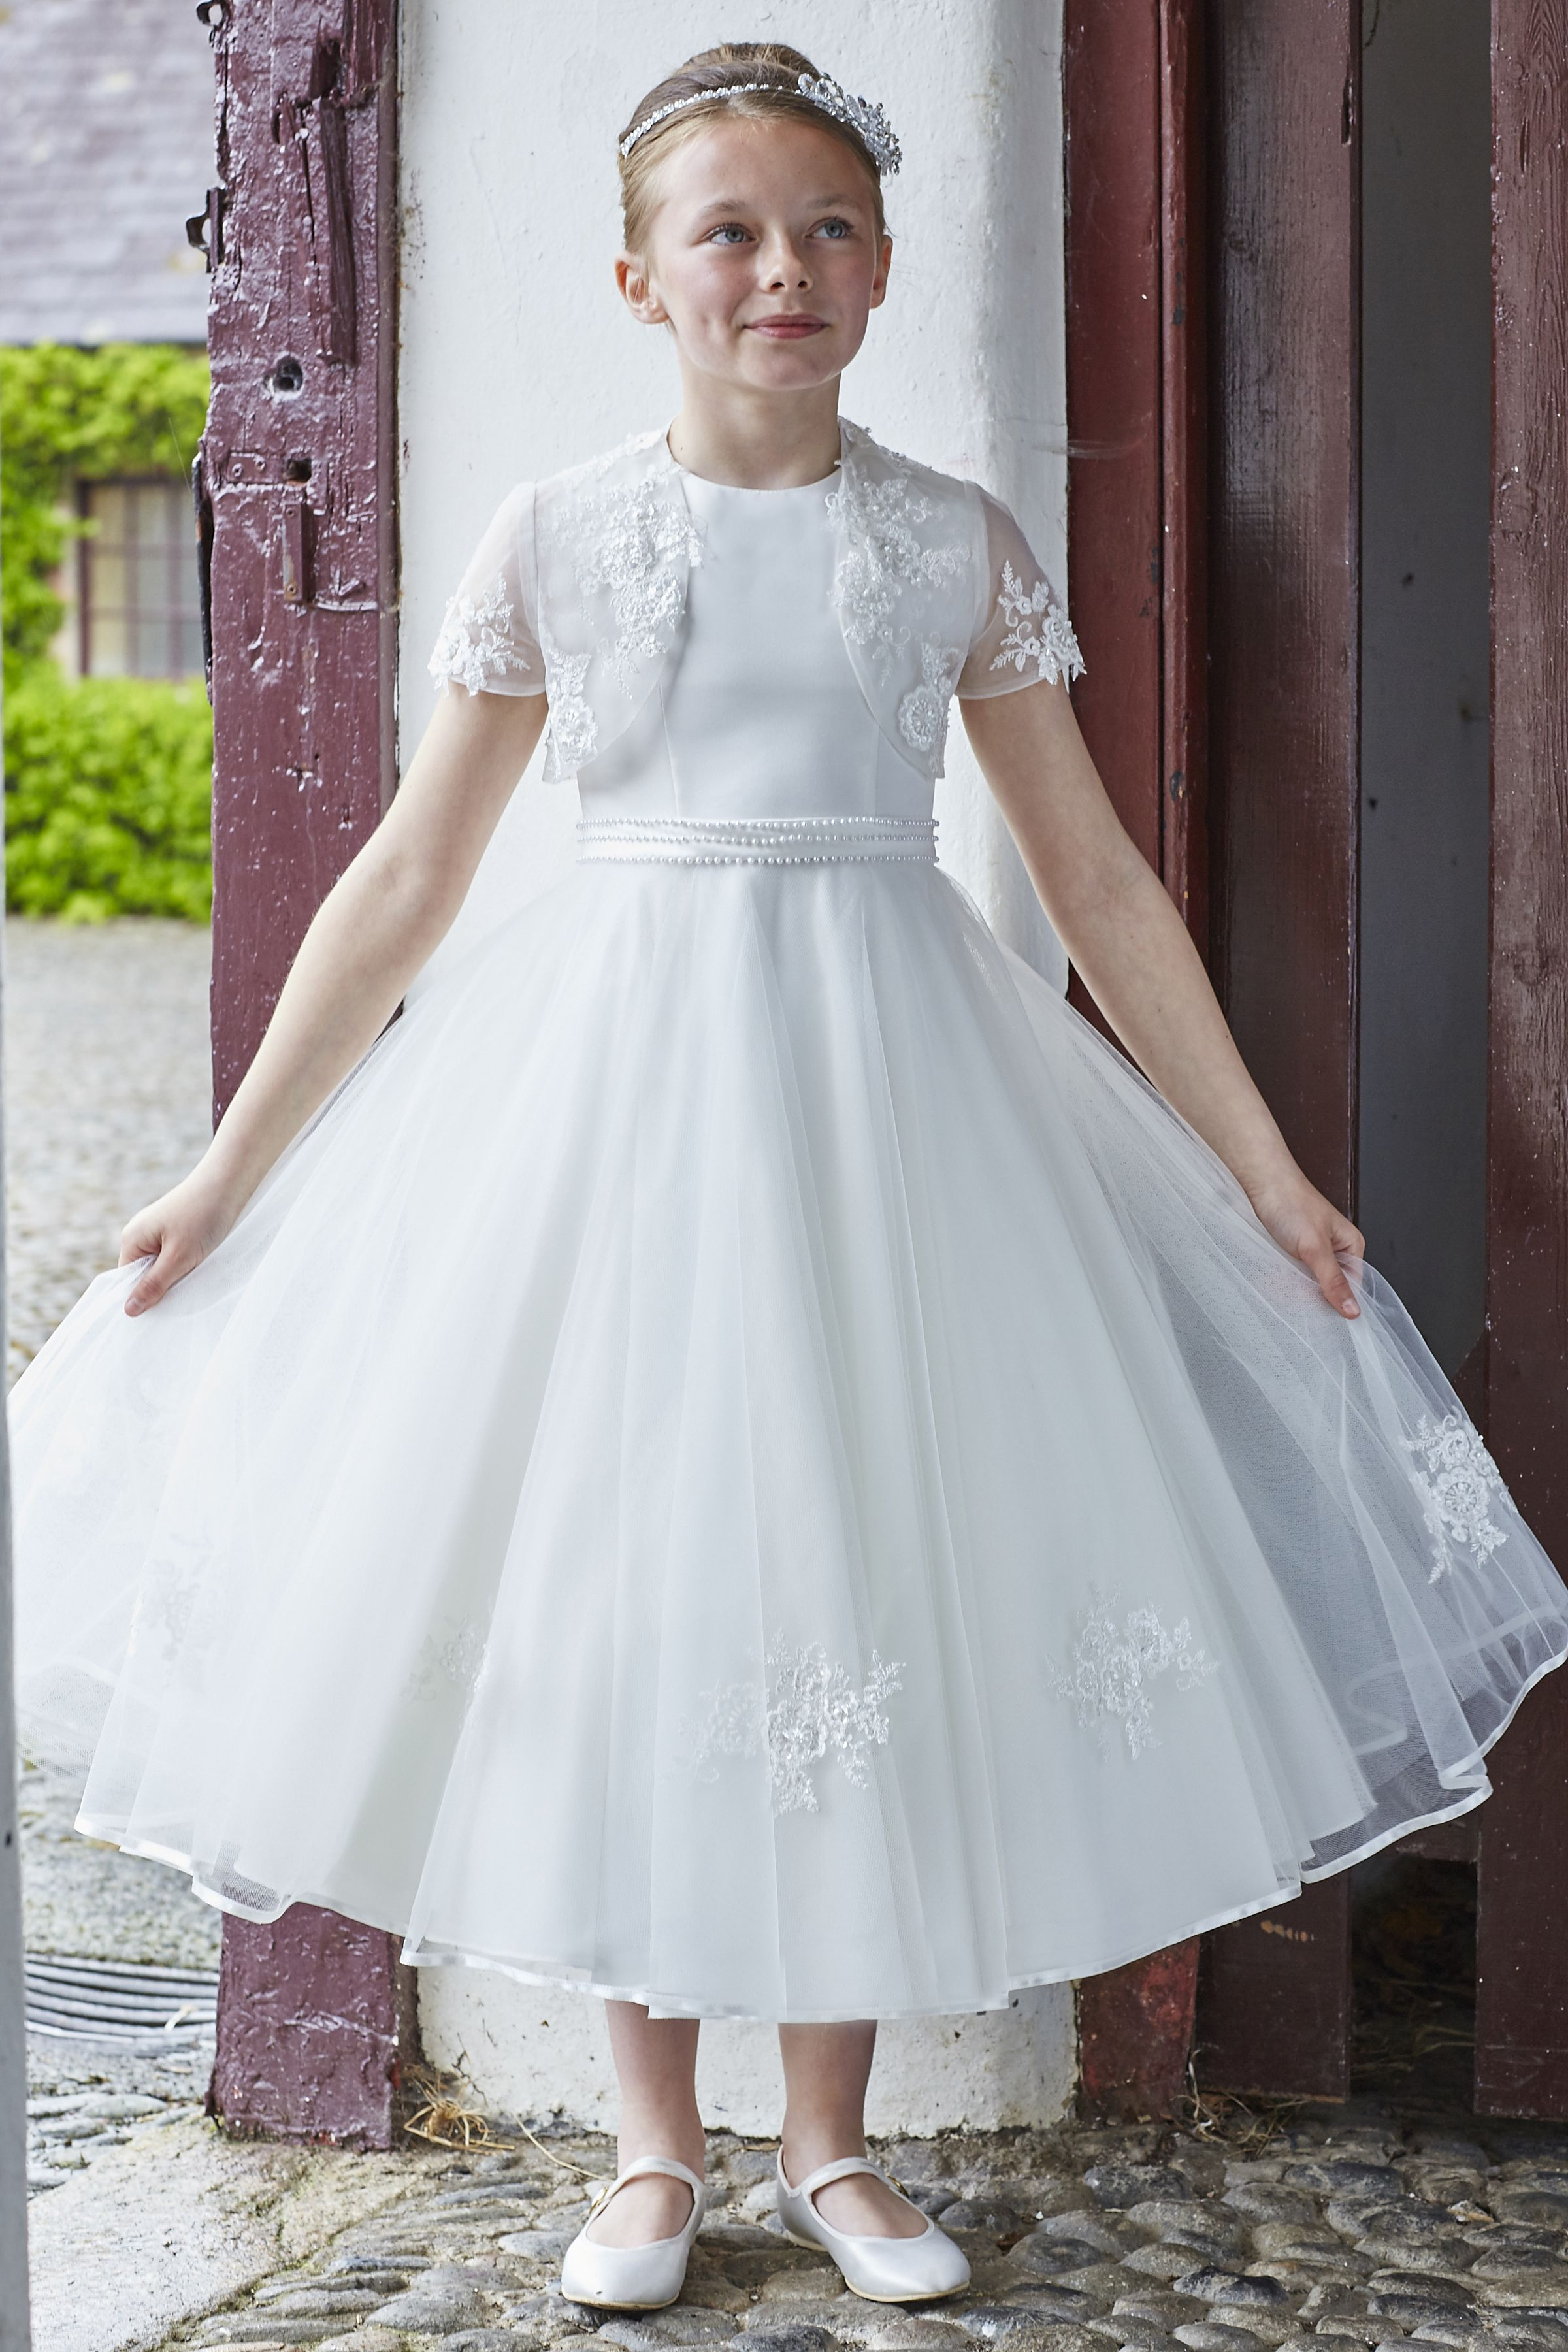 Ivory Communion Dress With Pearl Waistband First Communion Dresses Communion Dresses Dresses [ 3600 x 2400 Pixel ]